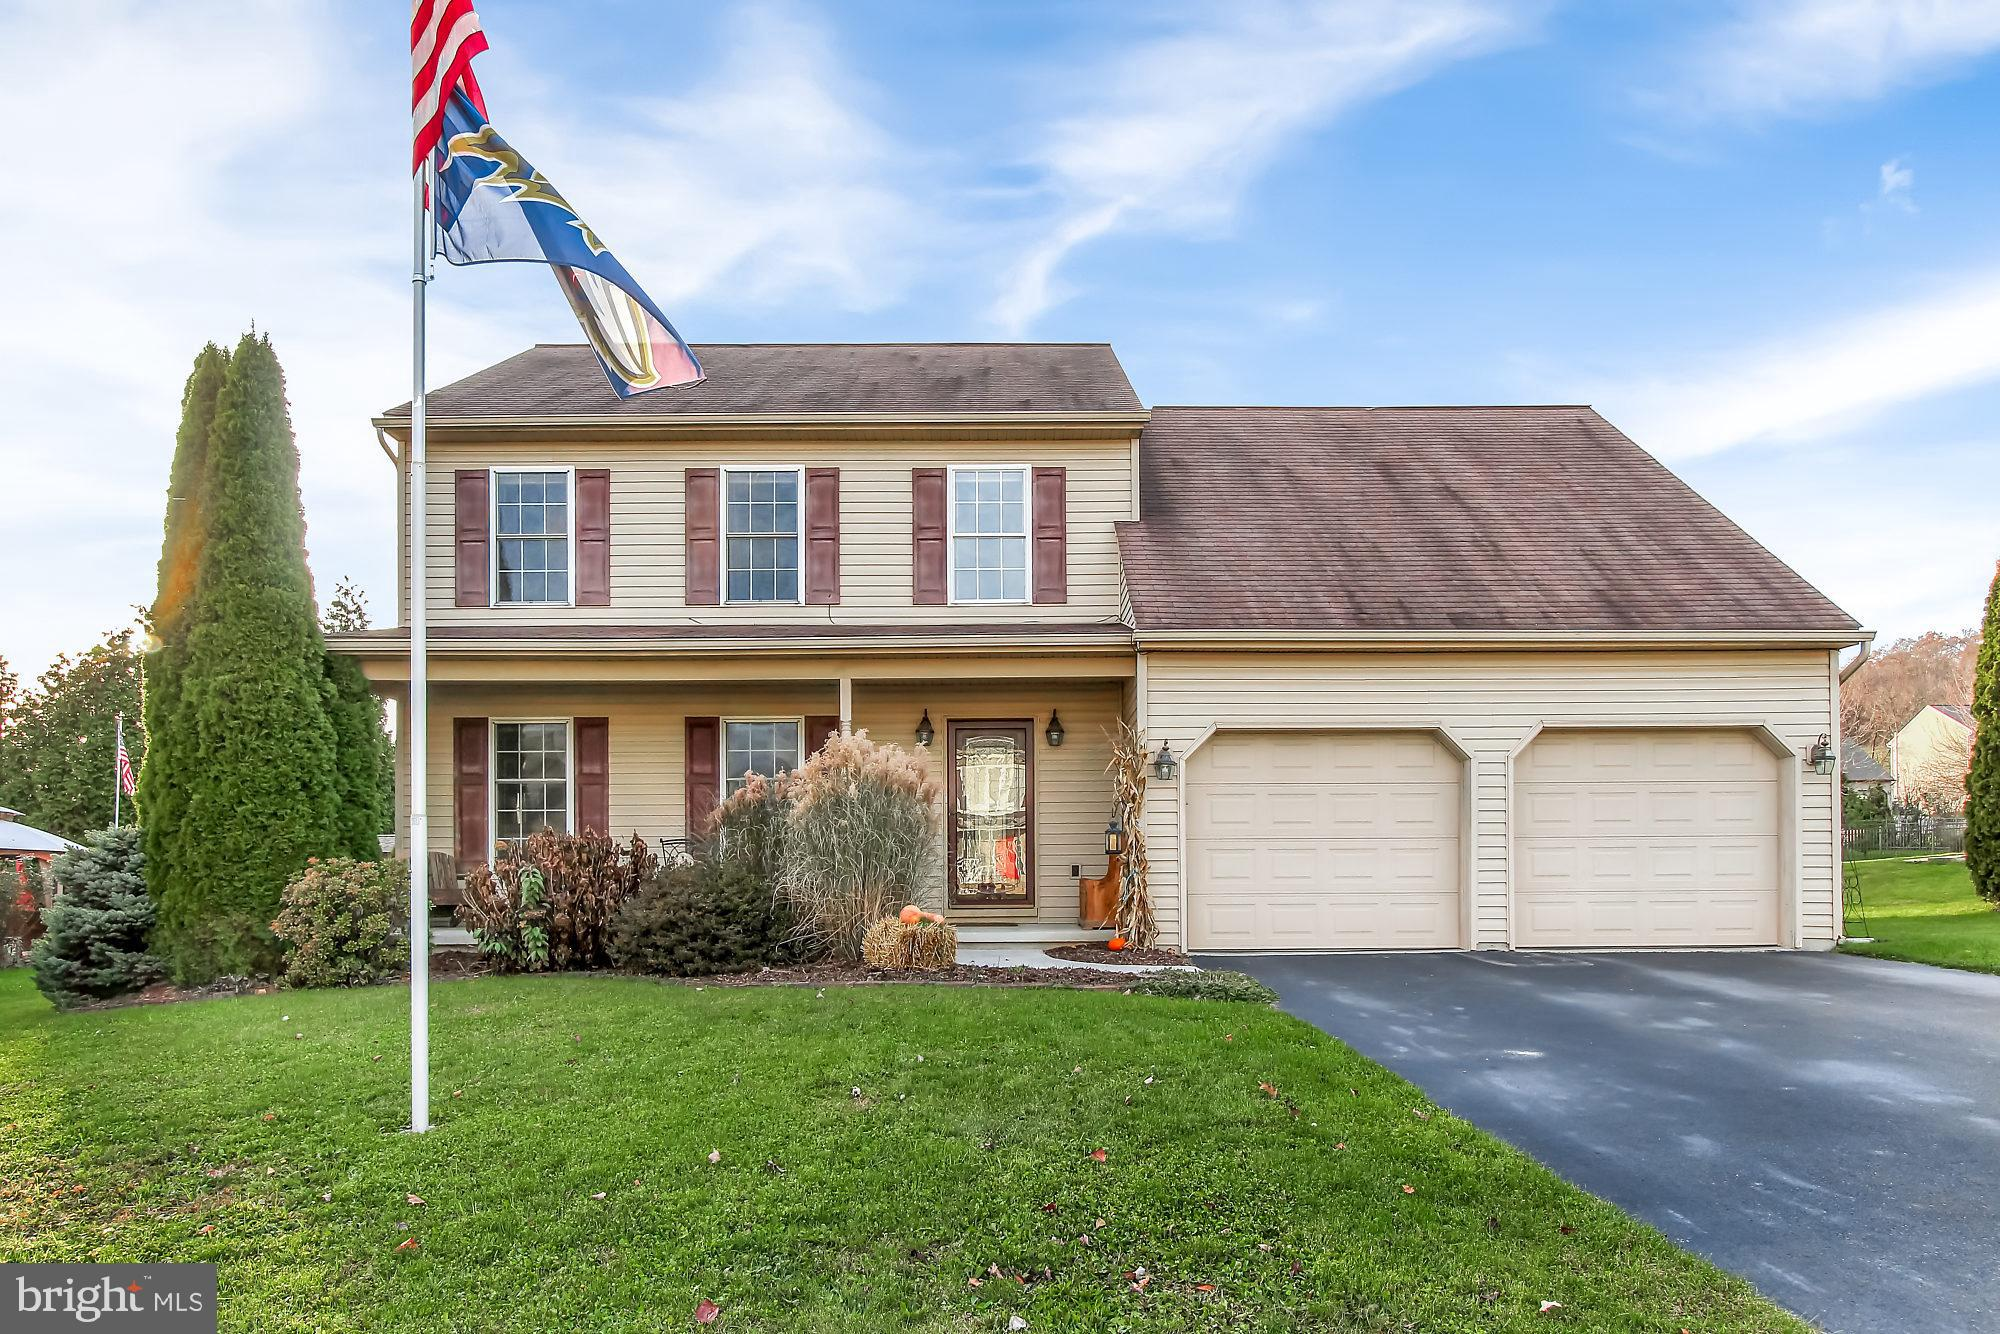 360 SILVER MAPLE COURT, MOUNT WOLF, PA 17347